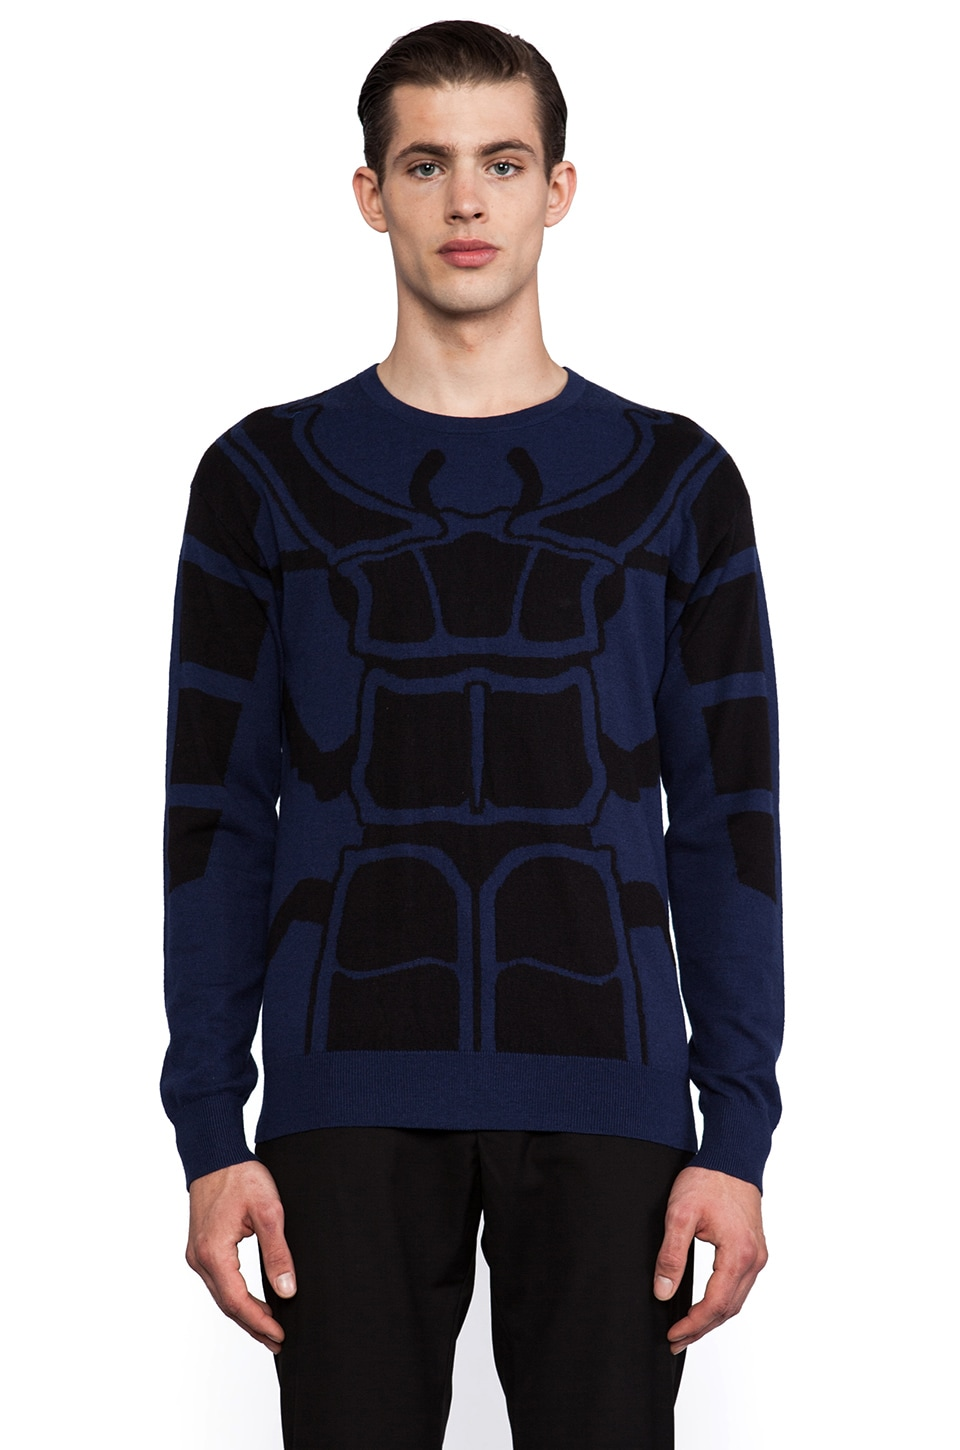 J. Lindeberg Molaro Bug Intarsia Sweater in Dark Blue